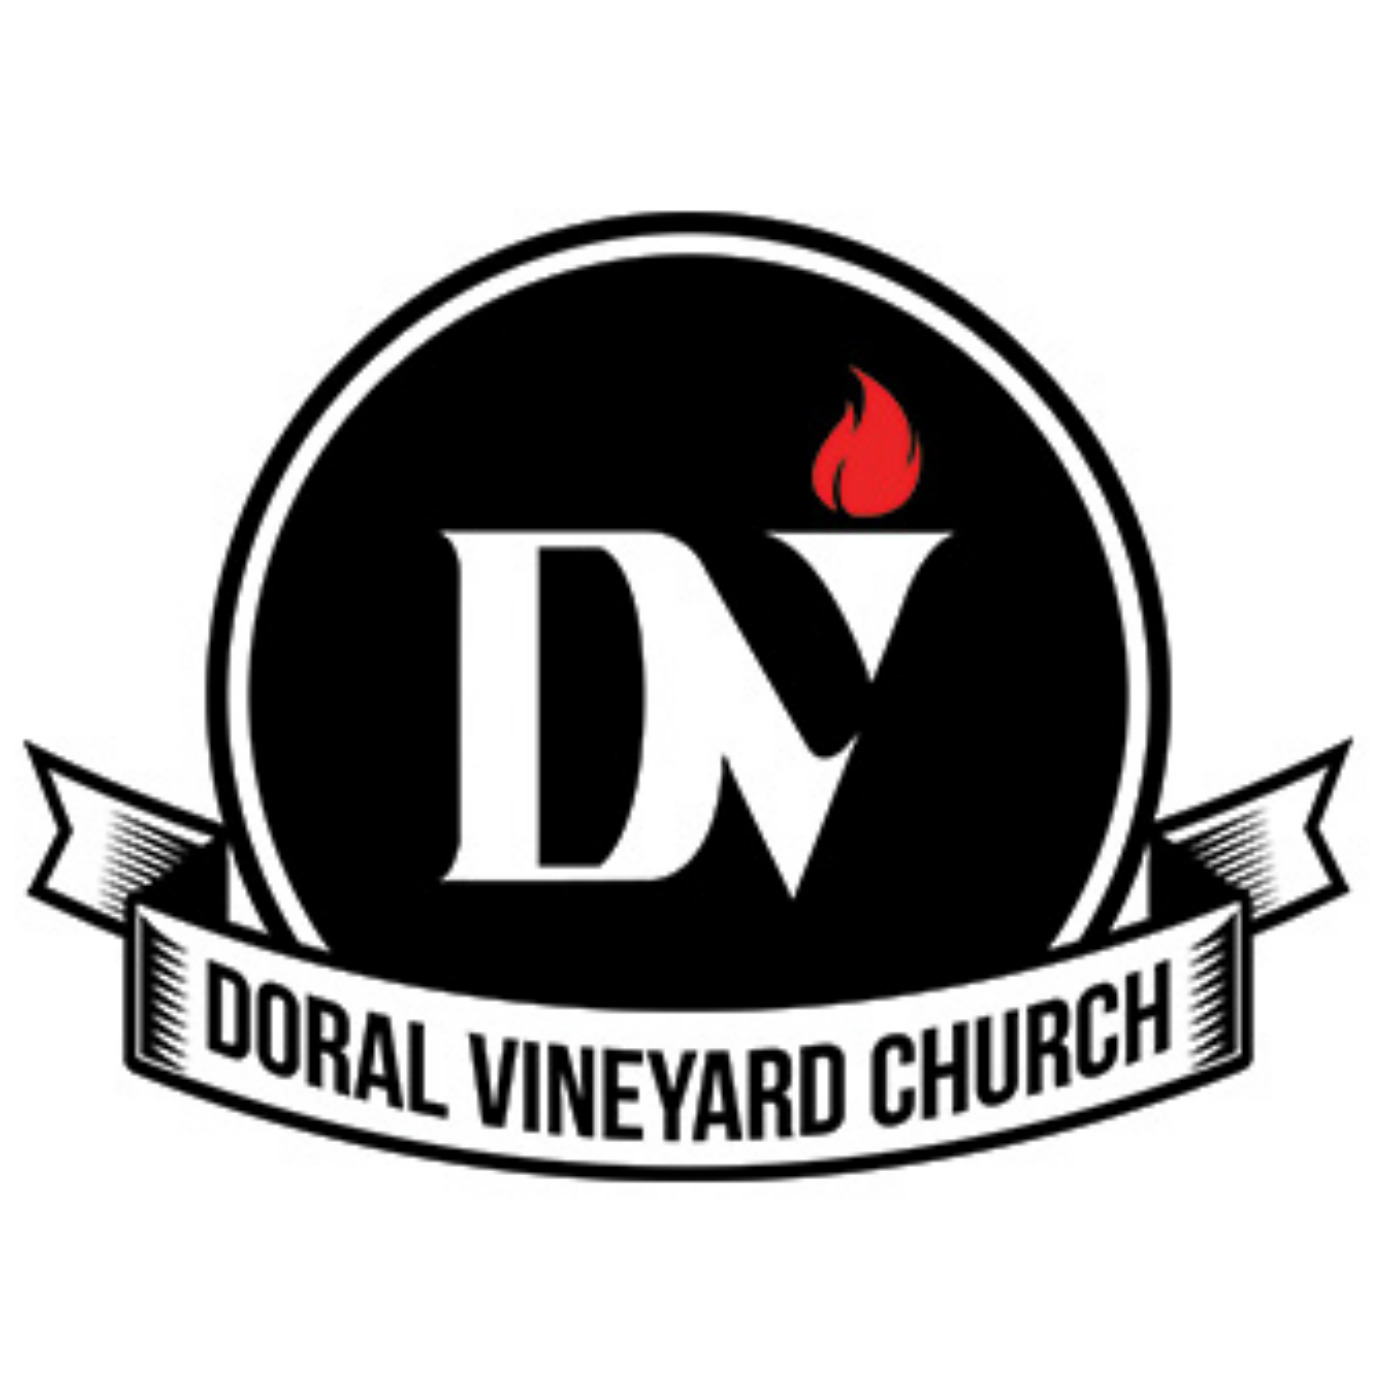 Doral Vineyard Church